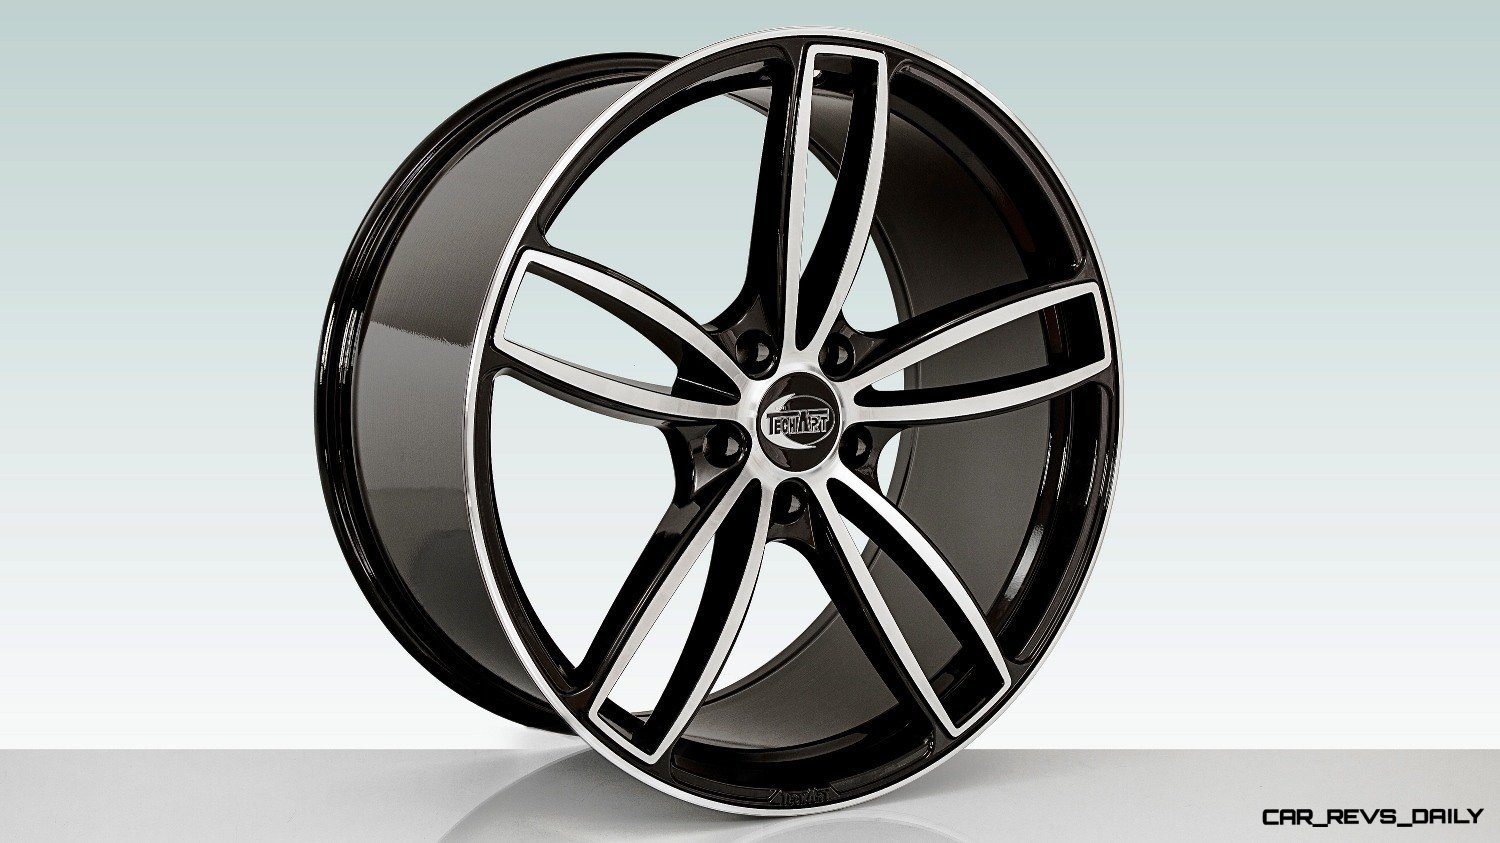 TECHART_Formula_IV_22-inch_light-alloy_wheel_bi-color